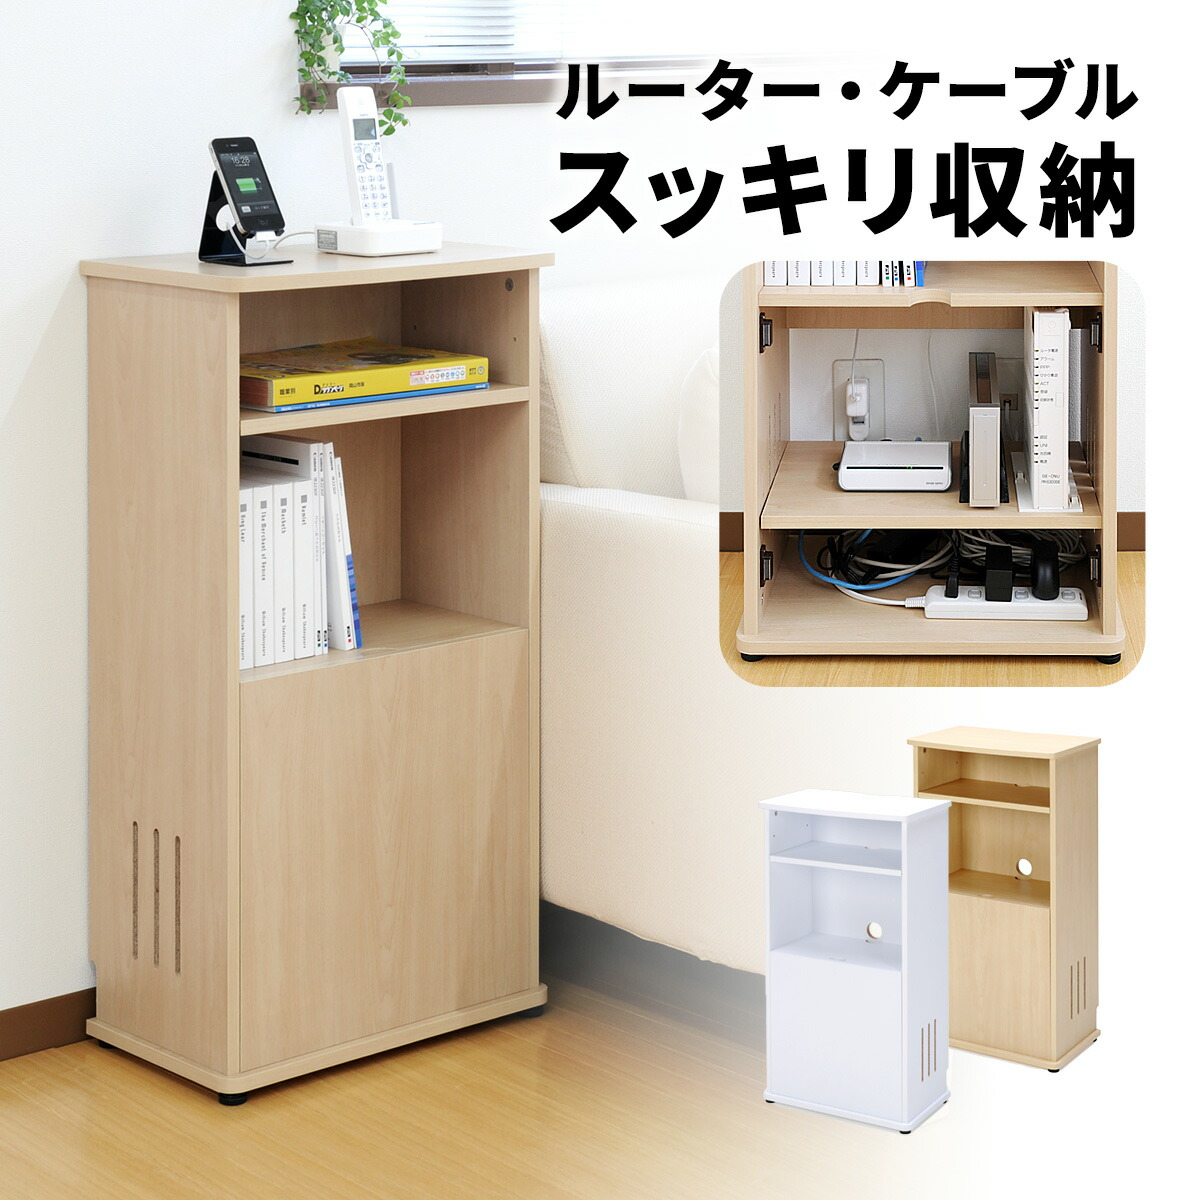 hight resolution of type cable box router storing box wiring cover fashion 100 desk066 clearly high